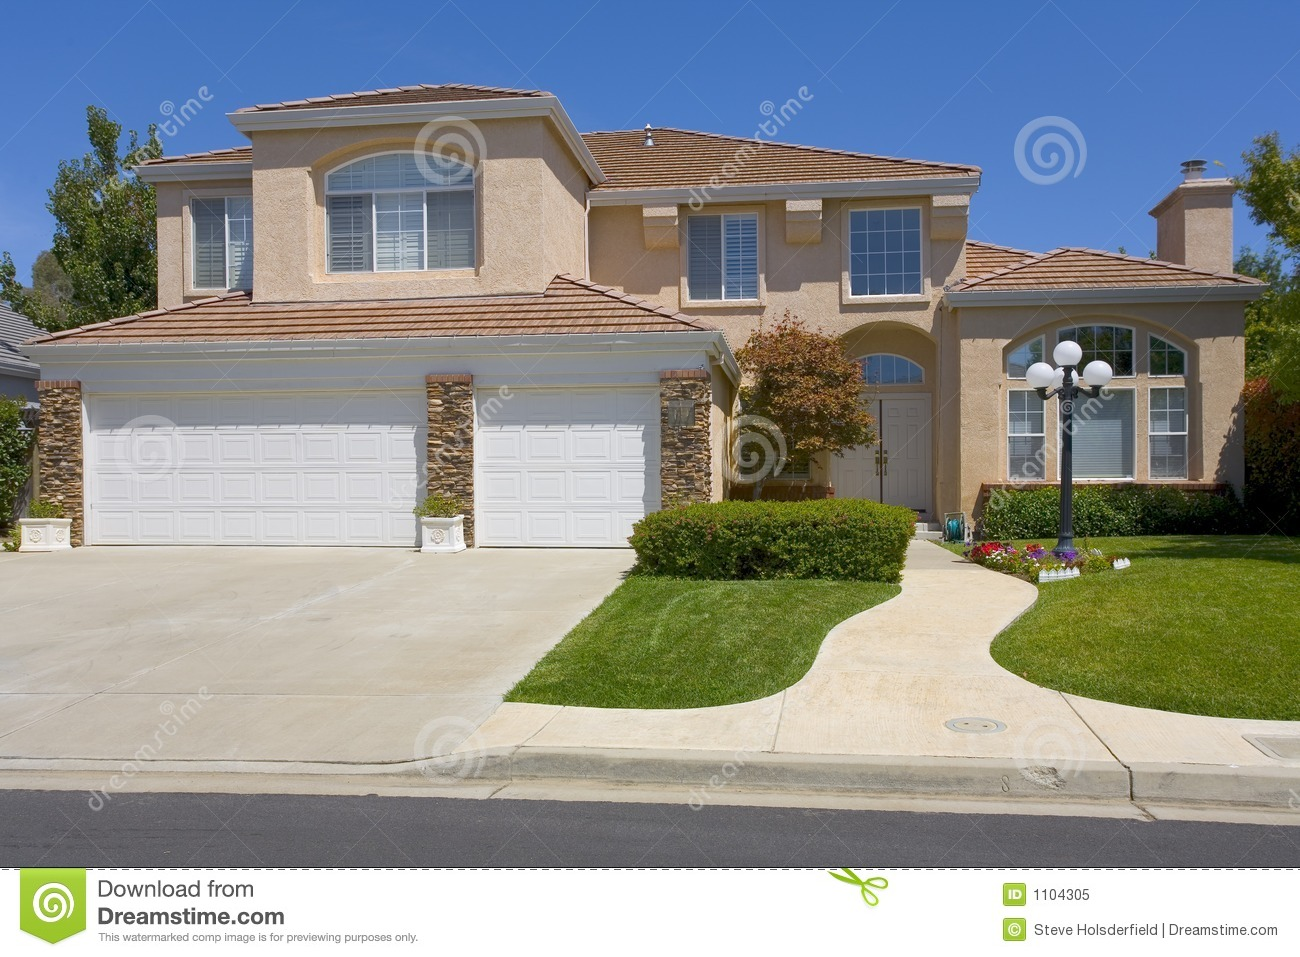 Two story stucco home with a street light stock image for A 2 story house